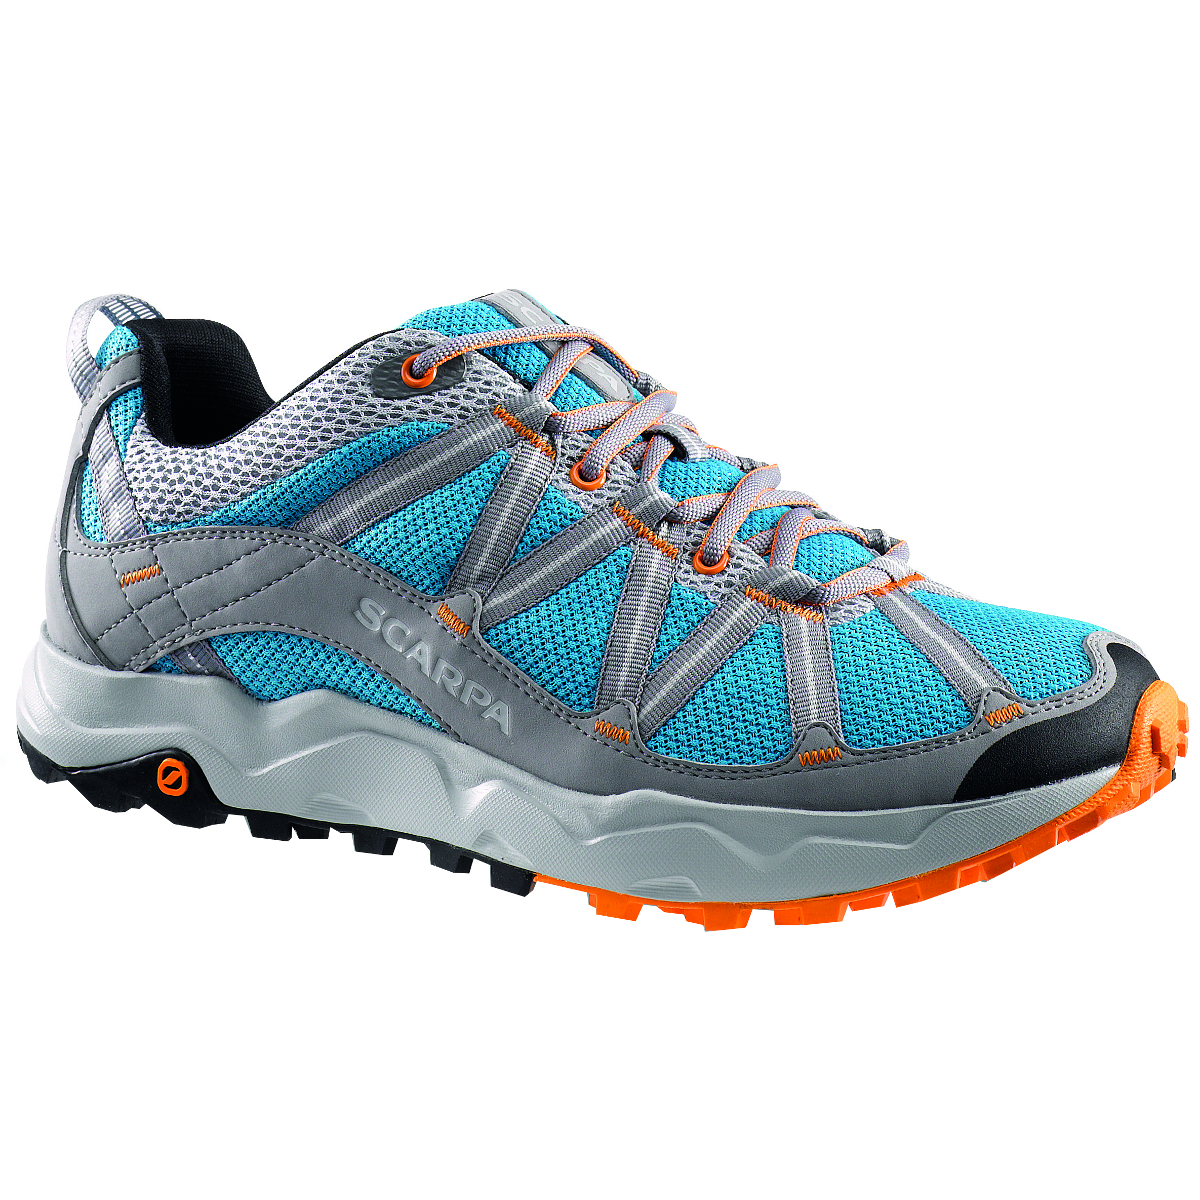 Scarpa - Ignite Wmn Azure-Silver - Trailrunning Shoes - 39,5